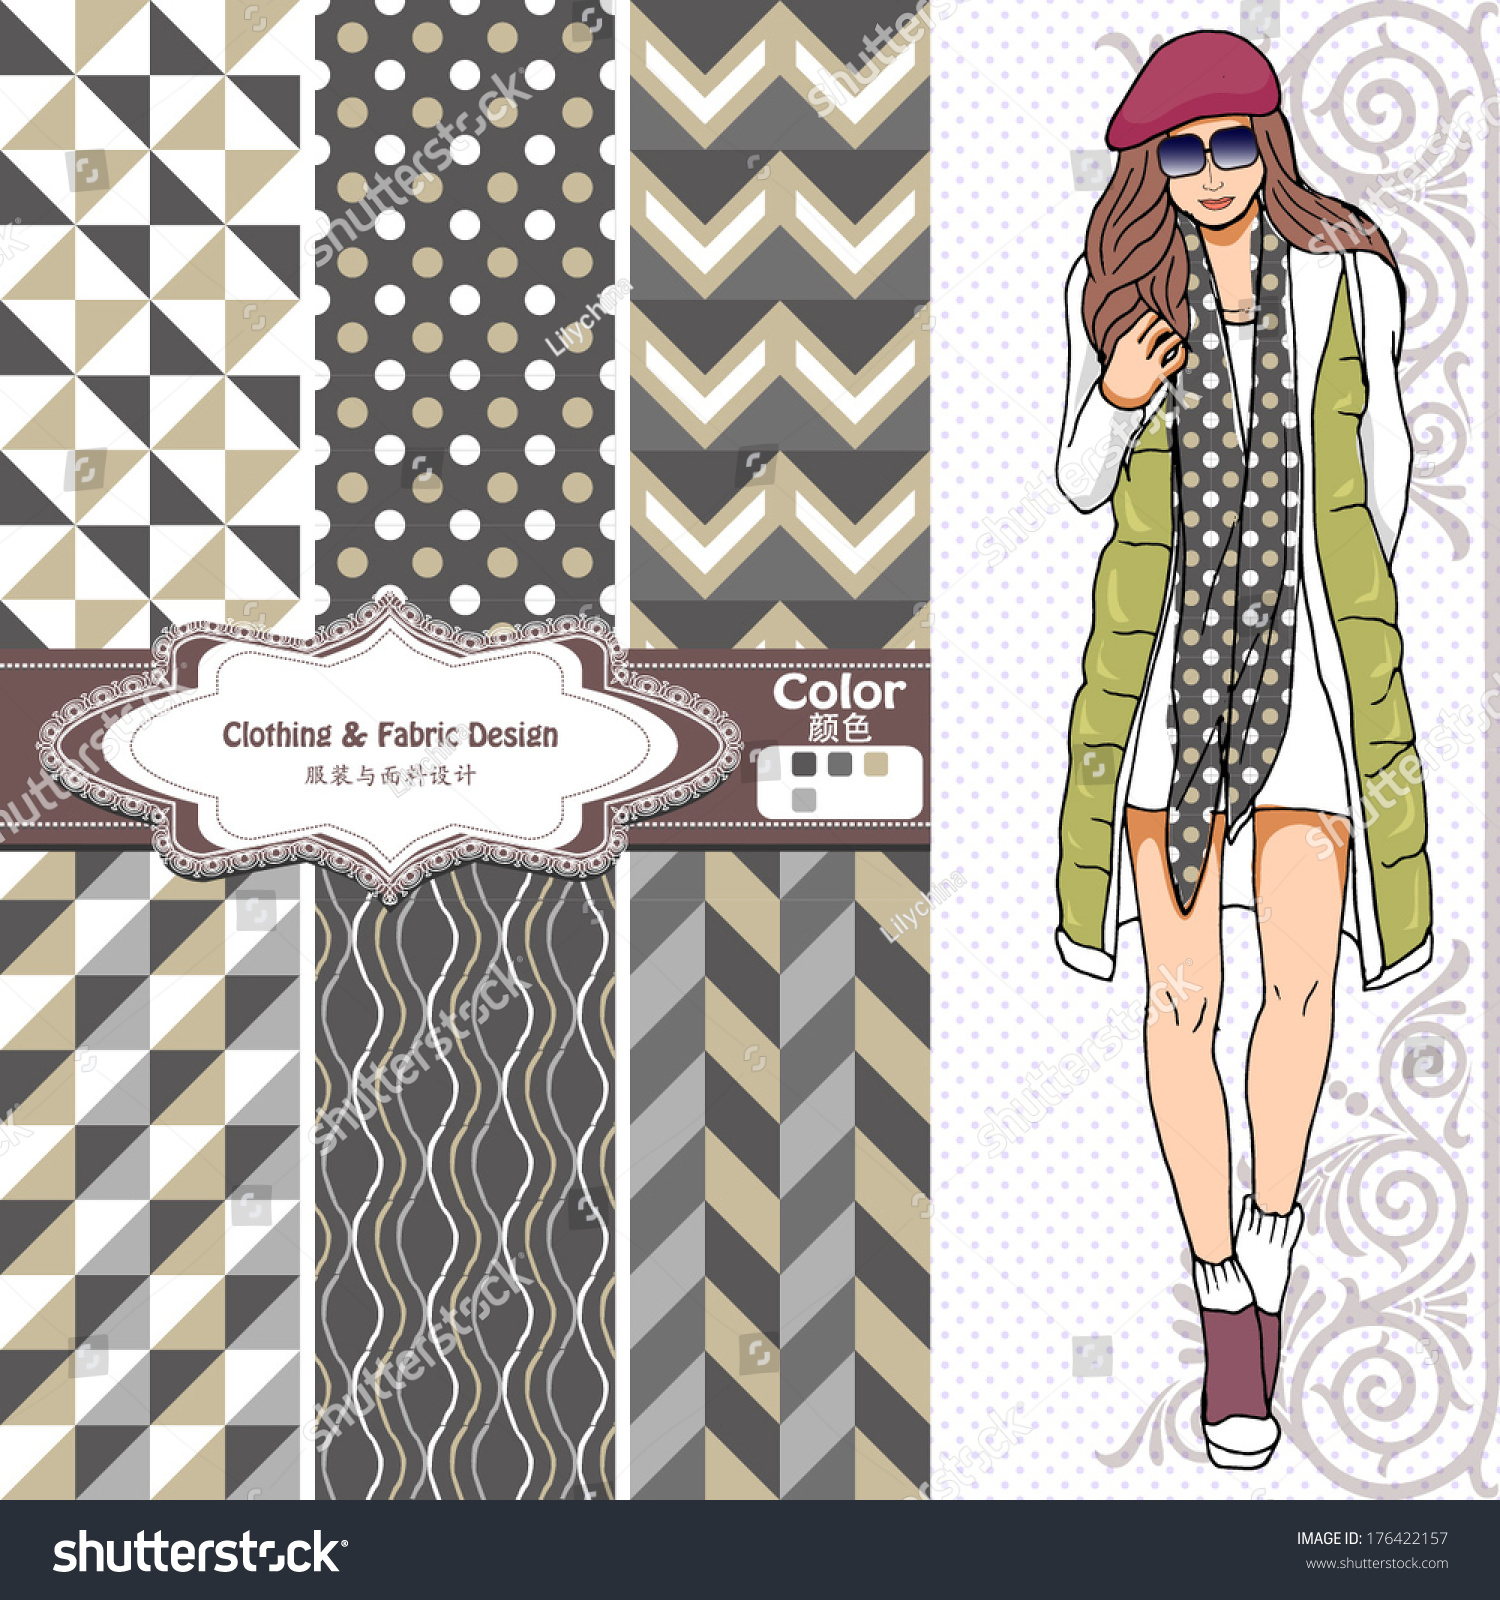 Wallpaper Wrapper Fabric Nice Fashion Girl Design The Chinese Words Mean Same As